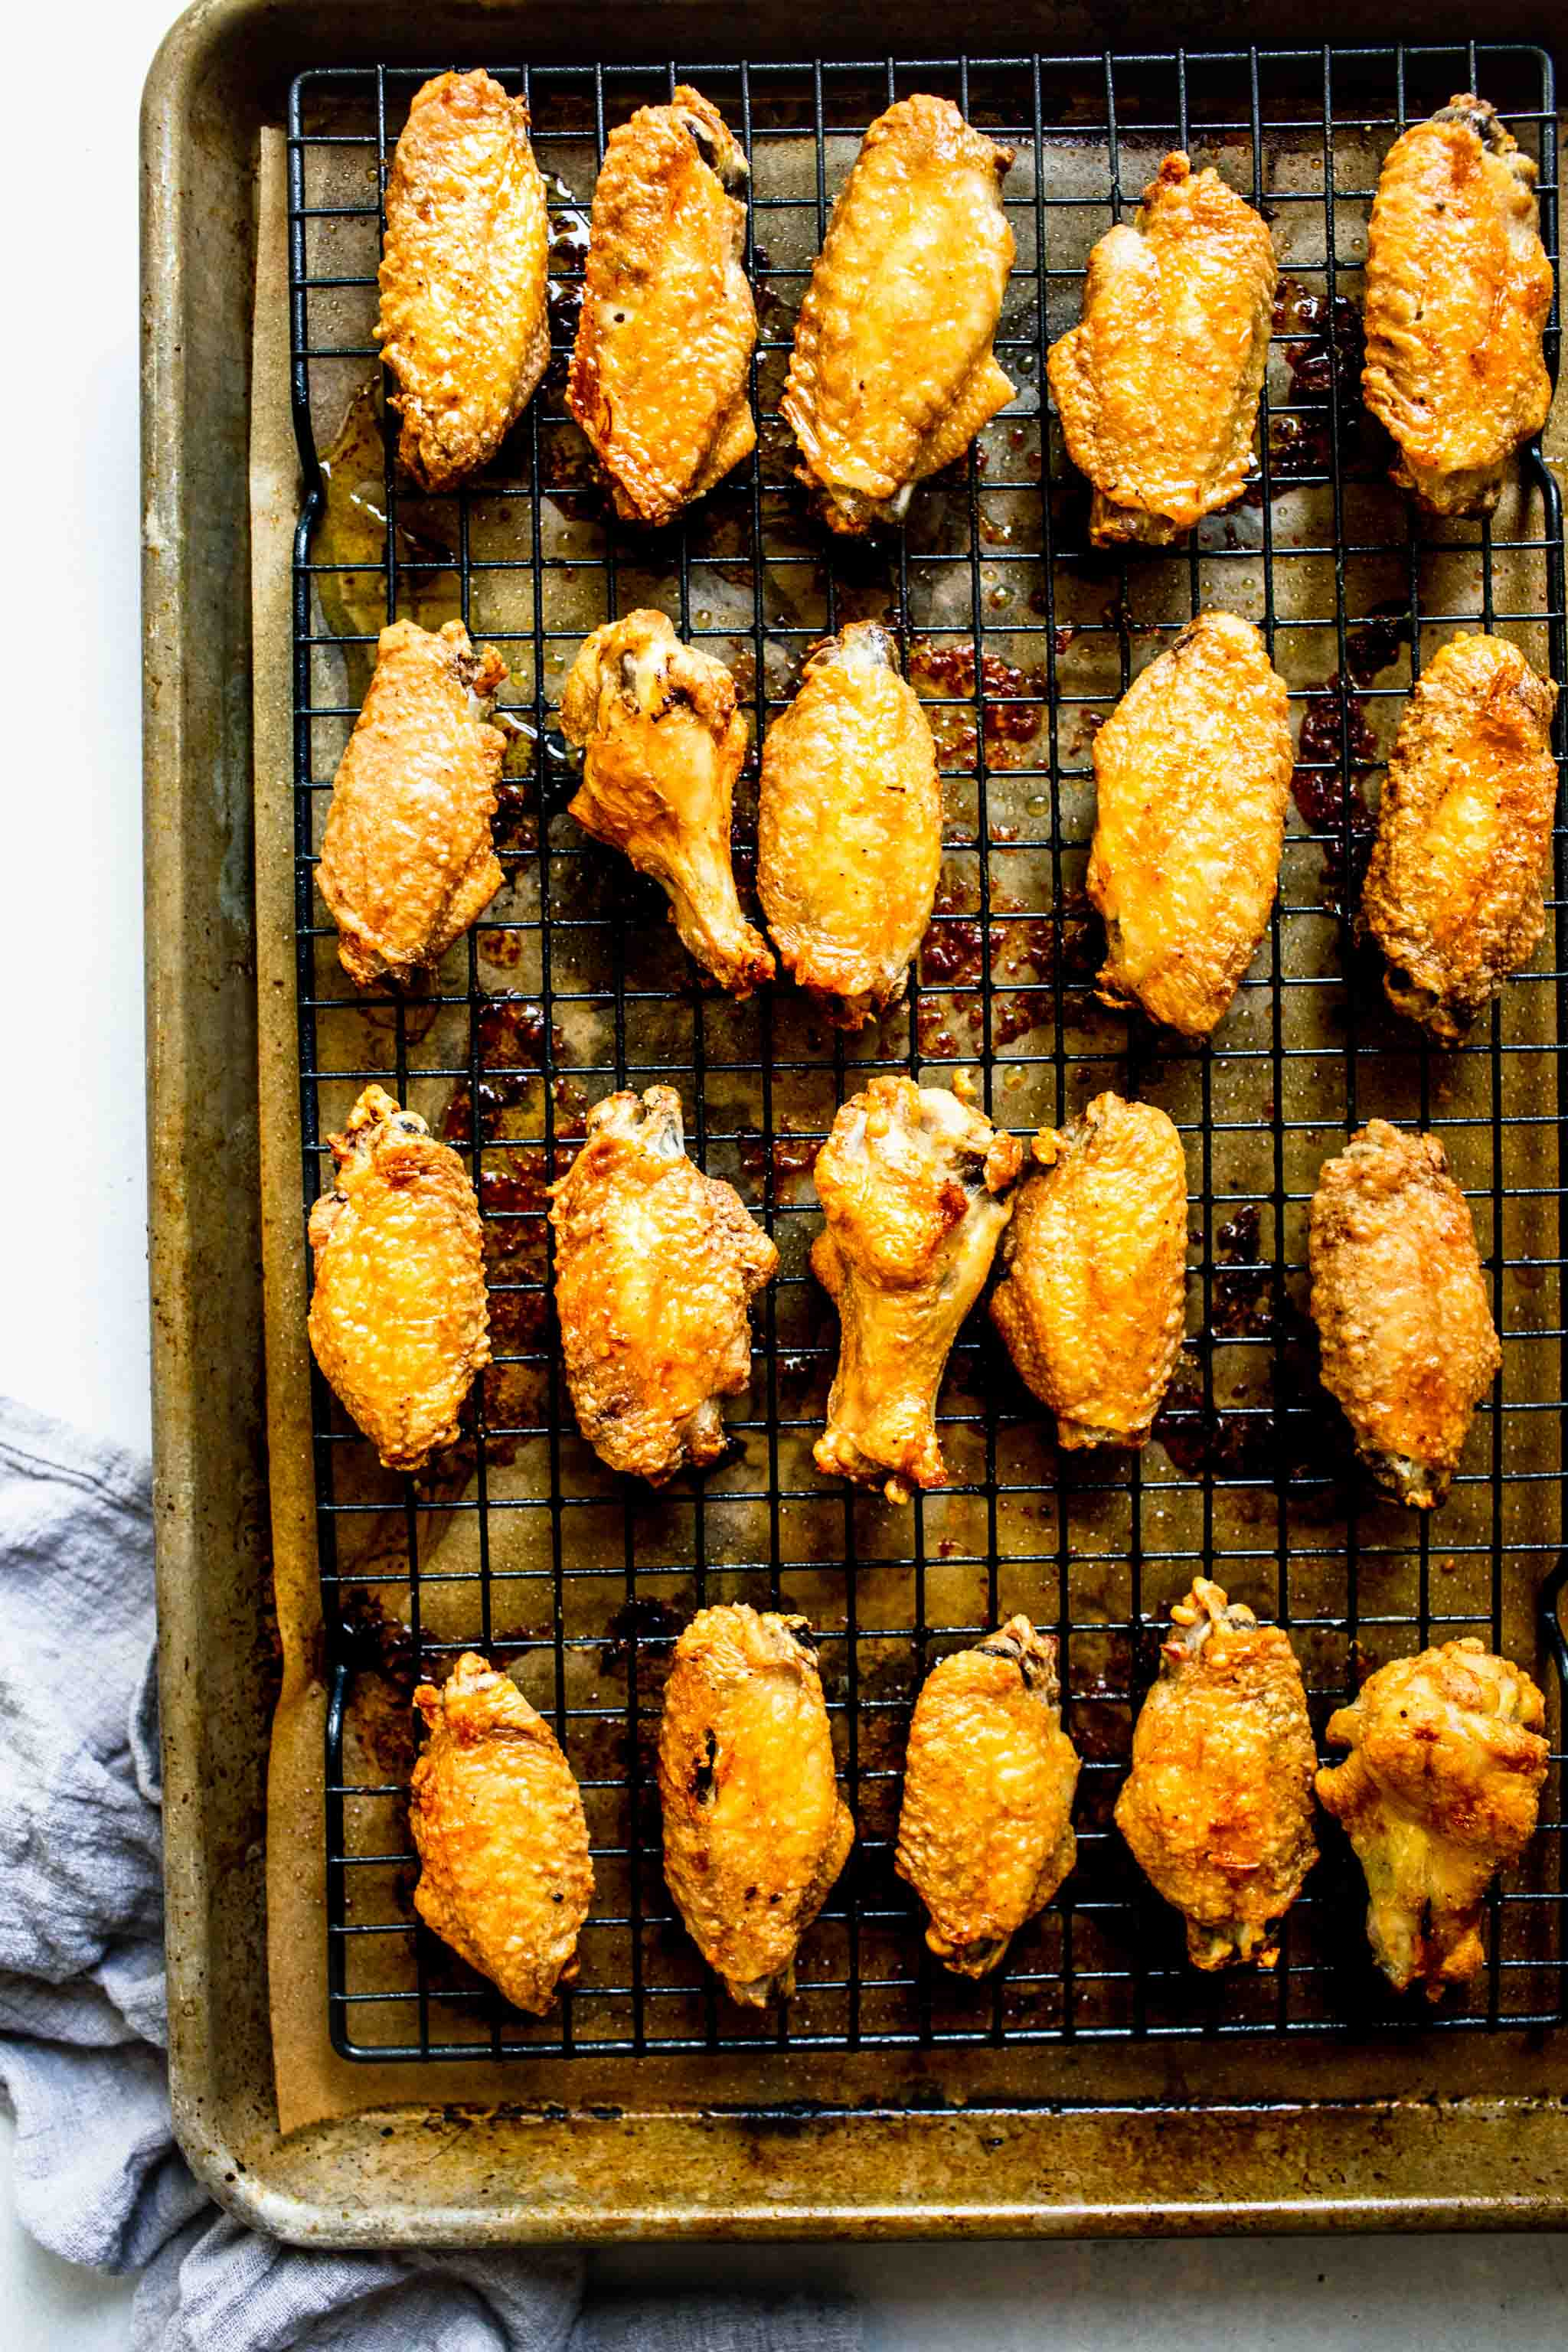 Baked buffalo wings on baking sheet.